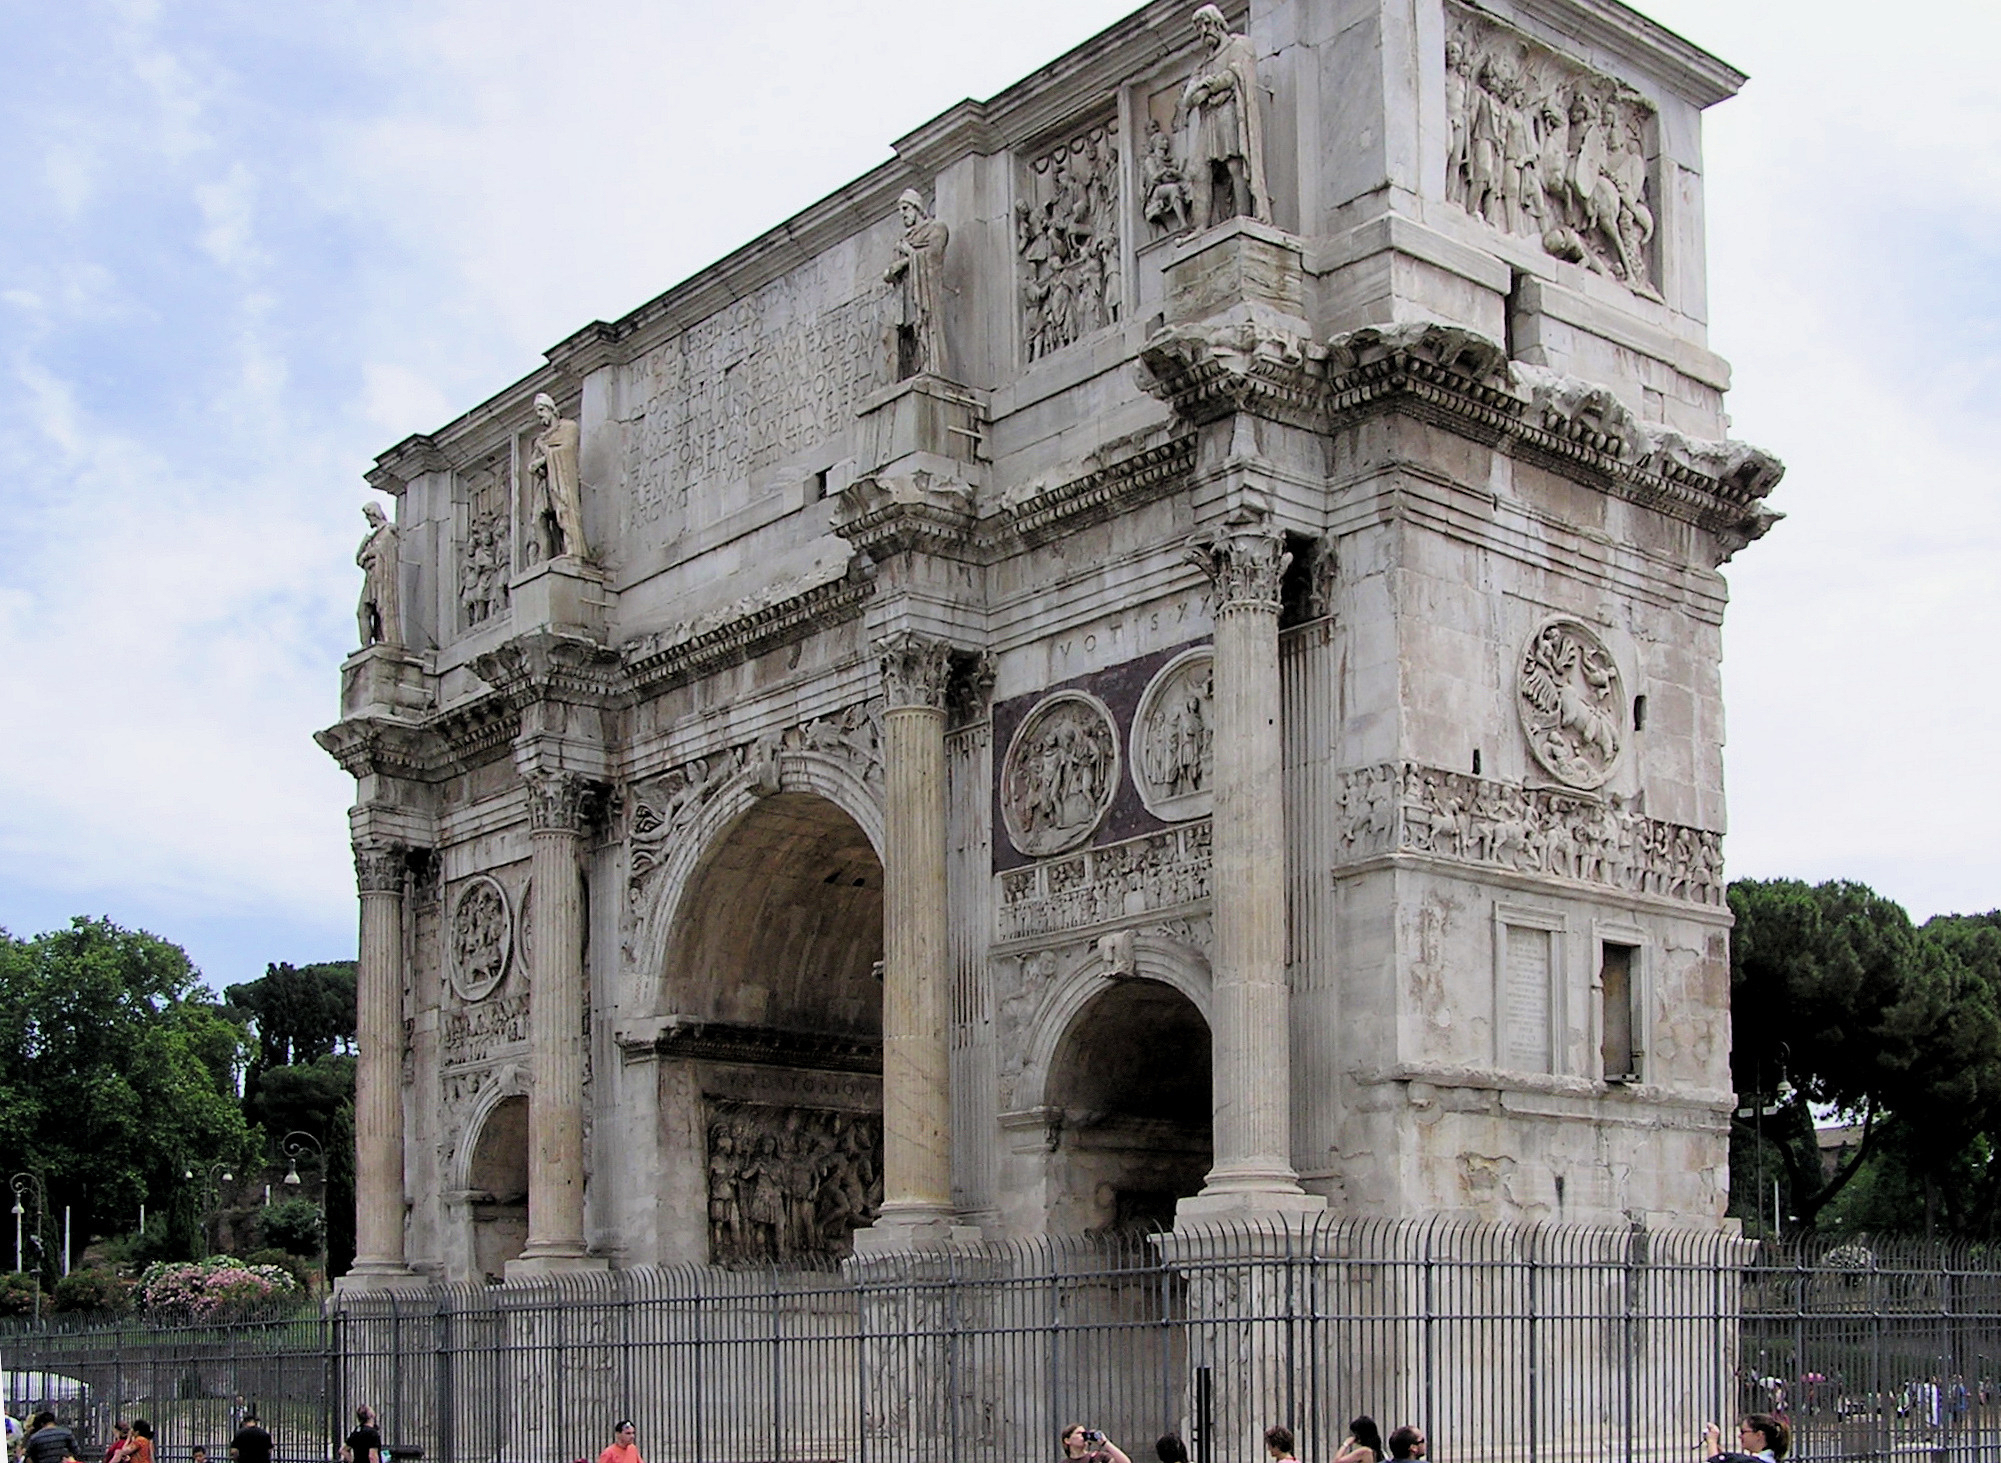 http://upload.wikimedia.org/wikipedia/commons/5/5a/Arch.of.constantine.threequarter.view.arp.jpg